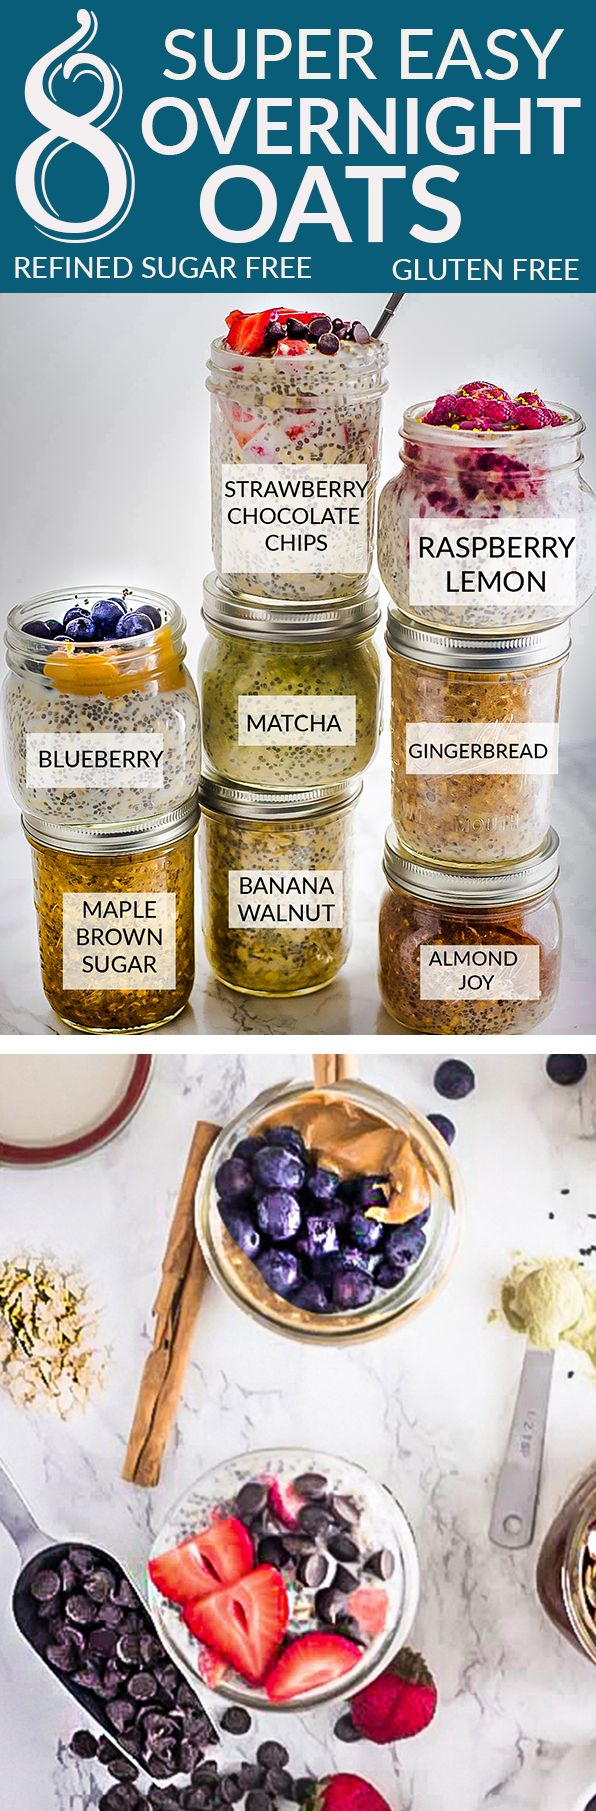 8 Healthy and delicious OVERNIGHT OATS – simple no-cook make-ahead oatmeal just perfect for busy mornings. Best of all, gluten free, refined sugar free and so easy to customize with your favorite flavors. Almond Joy, Banana Walnut, Blueberry Vanilla, Maple Brown Sugar, Matcha, Raspberry Lemon and Strawberry Chocolate. Super simple to make ahead the night before with less than 5 minutes. #overnightoats #oatmeal #breakfast #glutenfree #refinedsugarfree #recipe #healthy #nocook